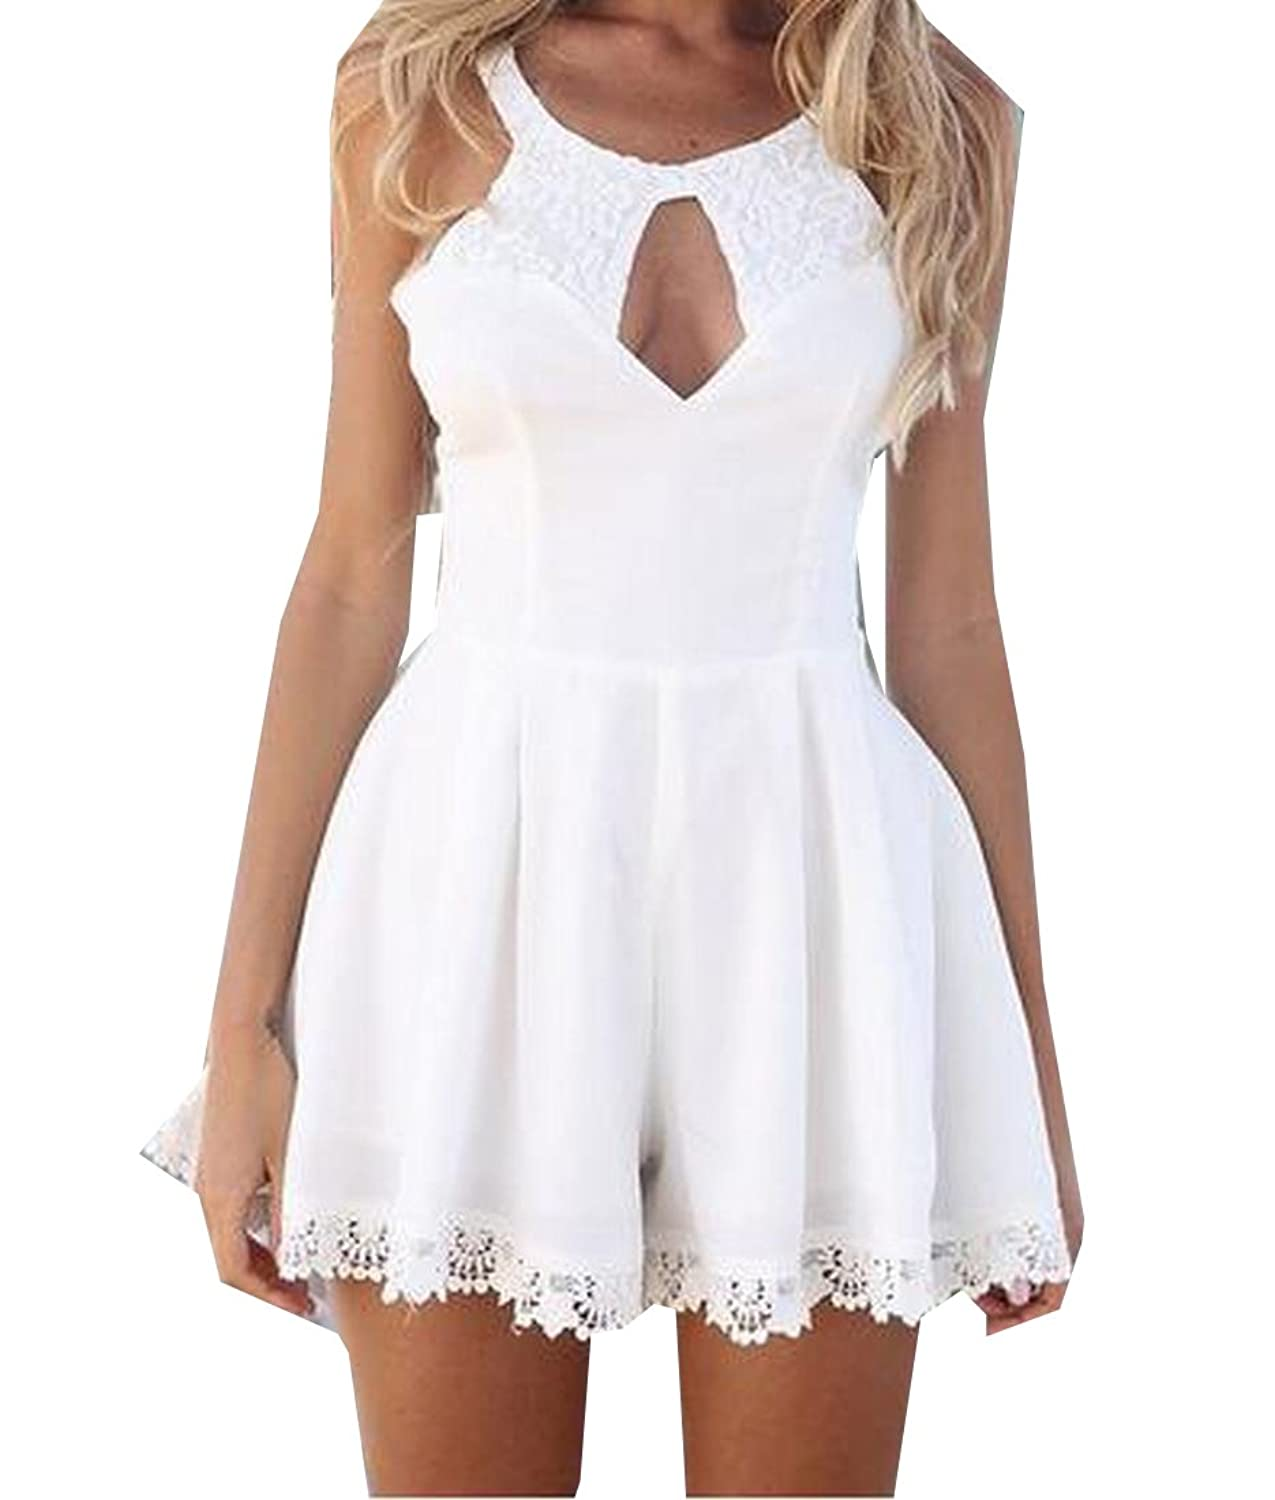 YUNY Womens Sexy Hollow Out Lace Ink Backless Wild Harness Dress